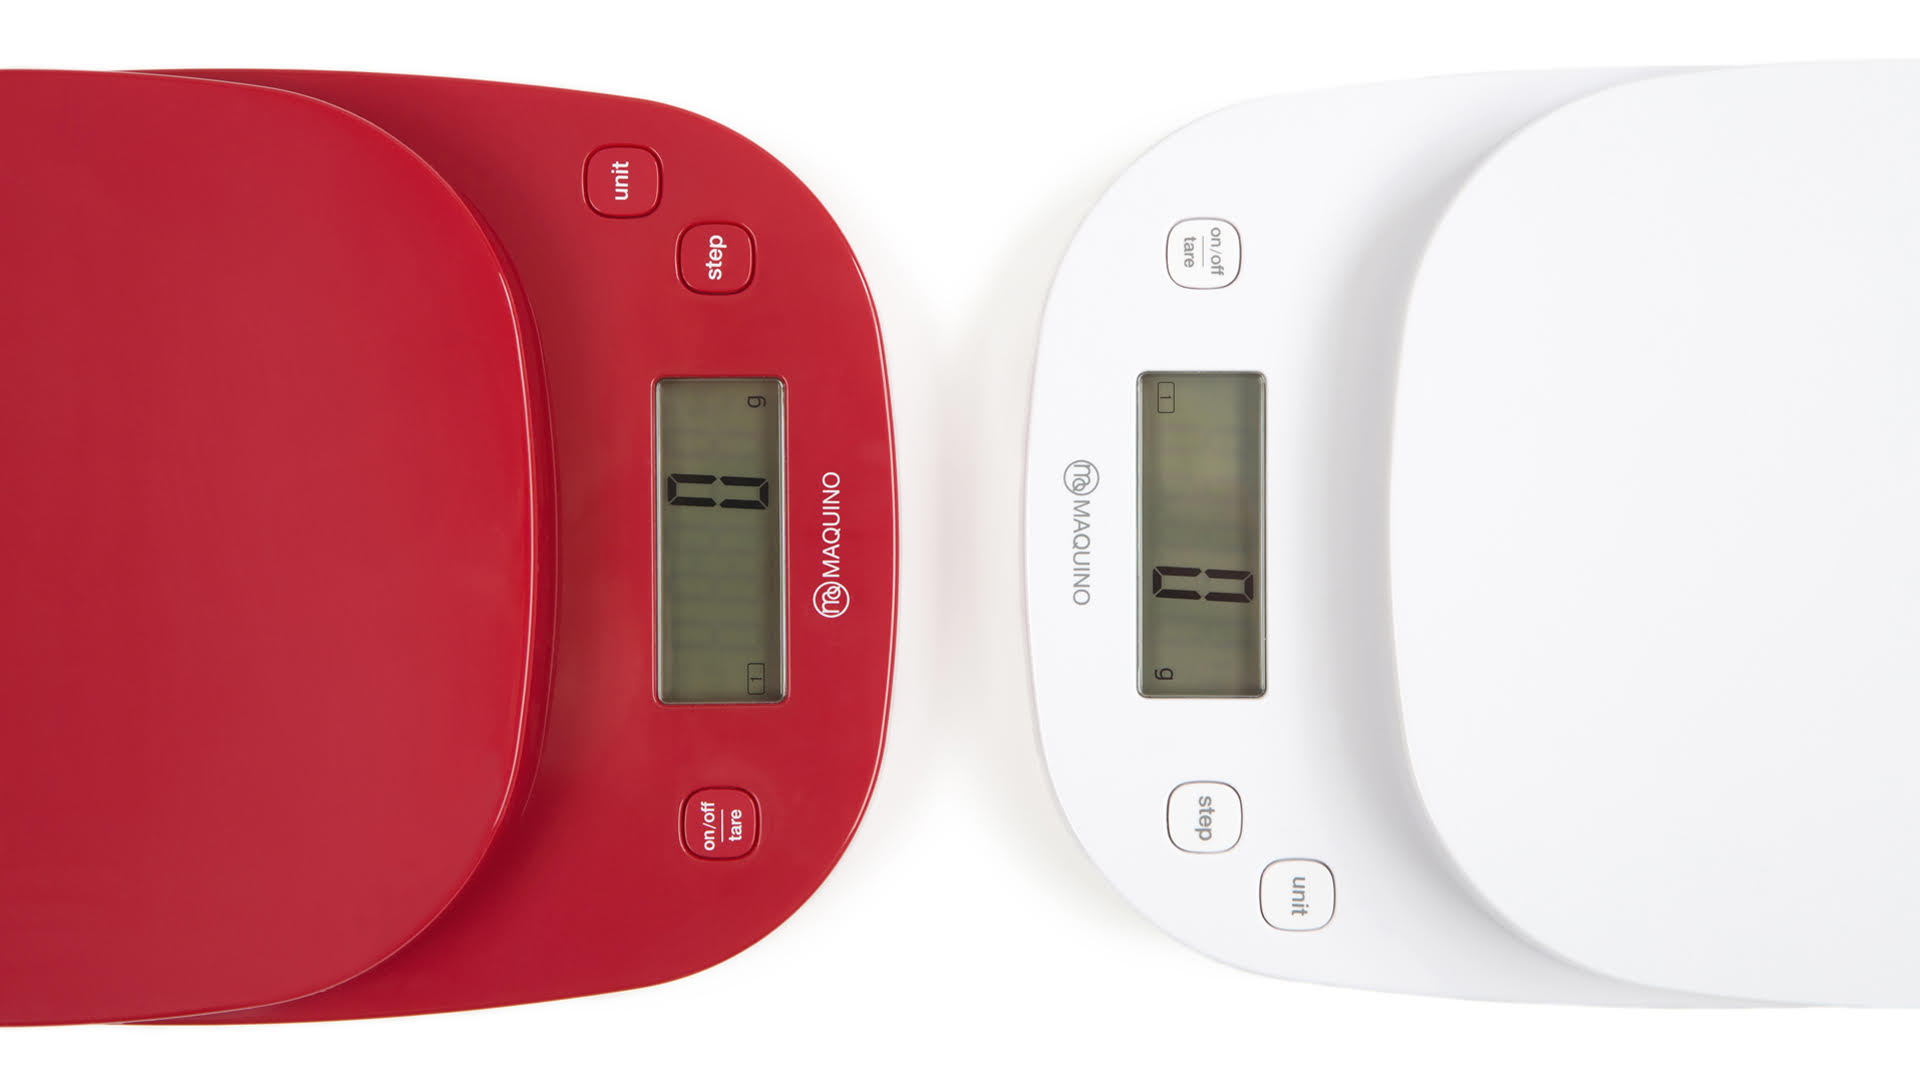 Scales Designed for Japanese Customers